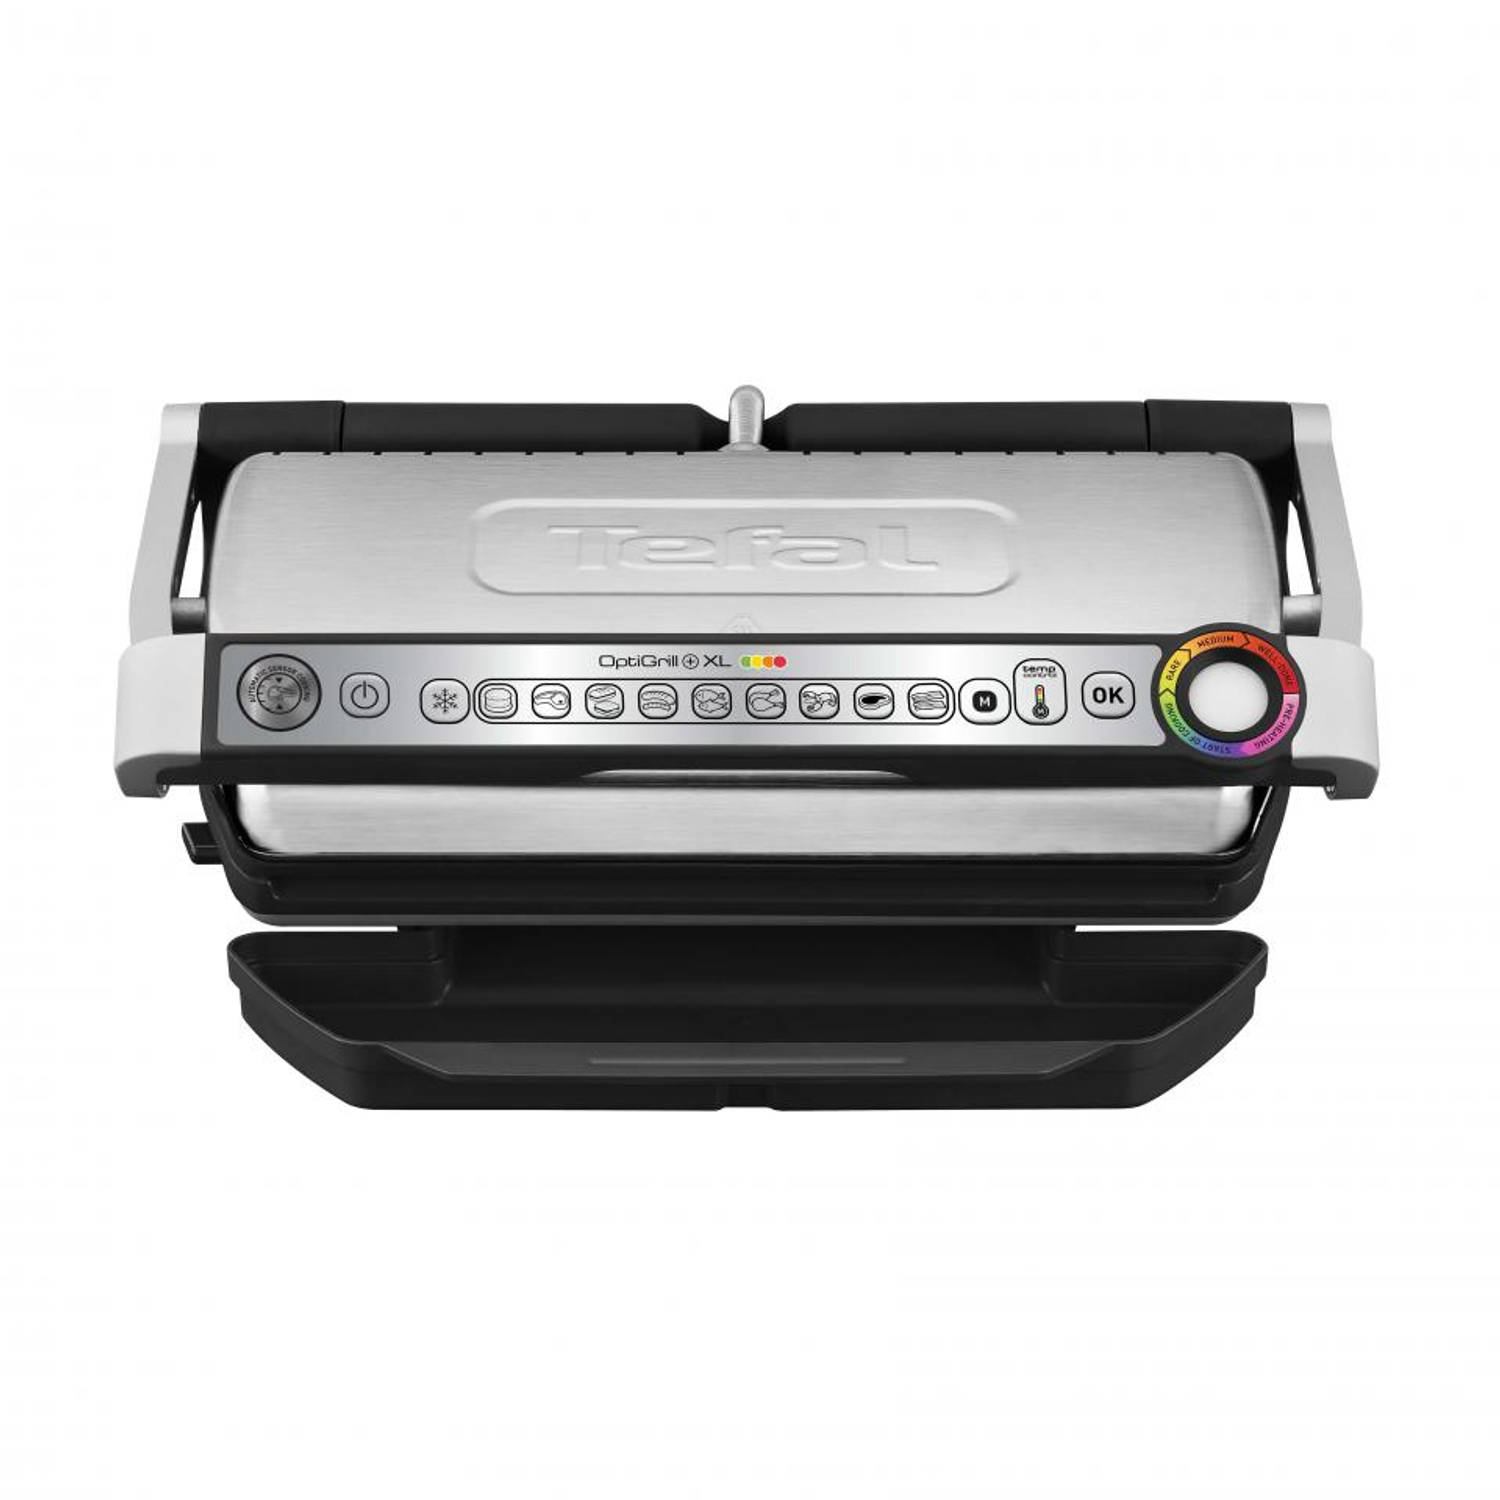 Tefal Optigrill contactgrill +XL GC722D